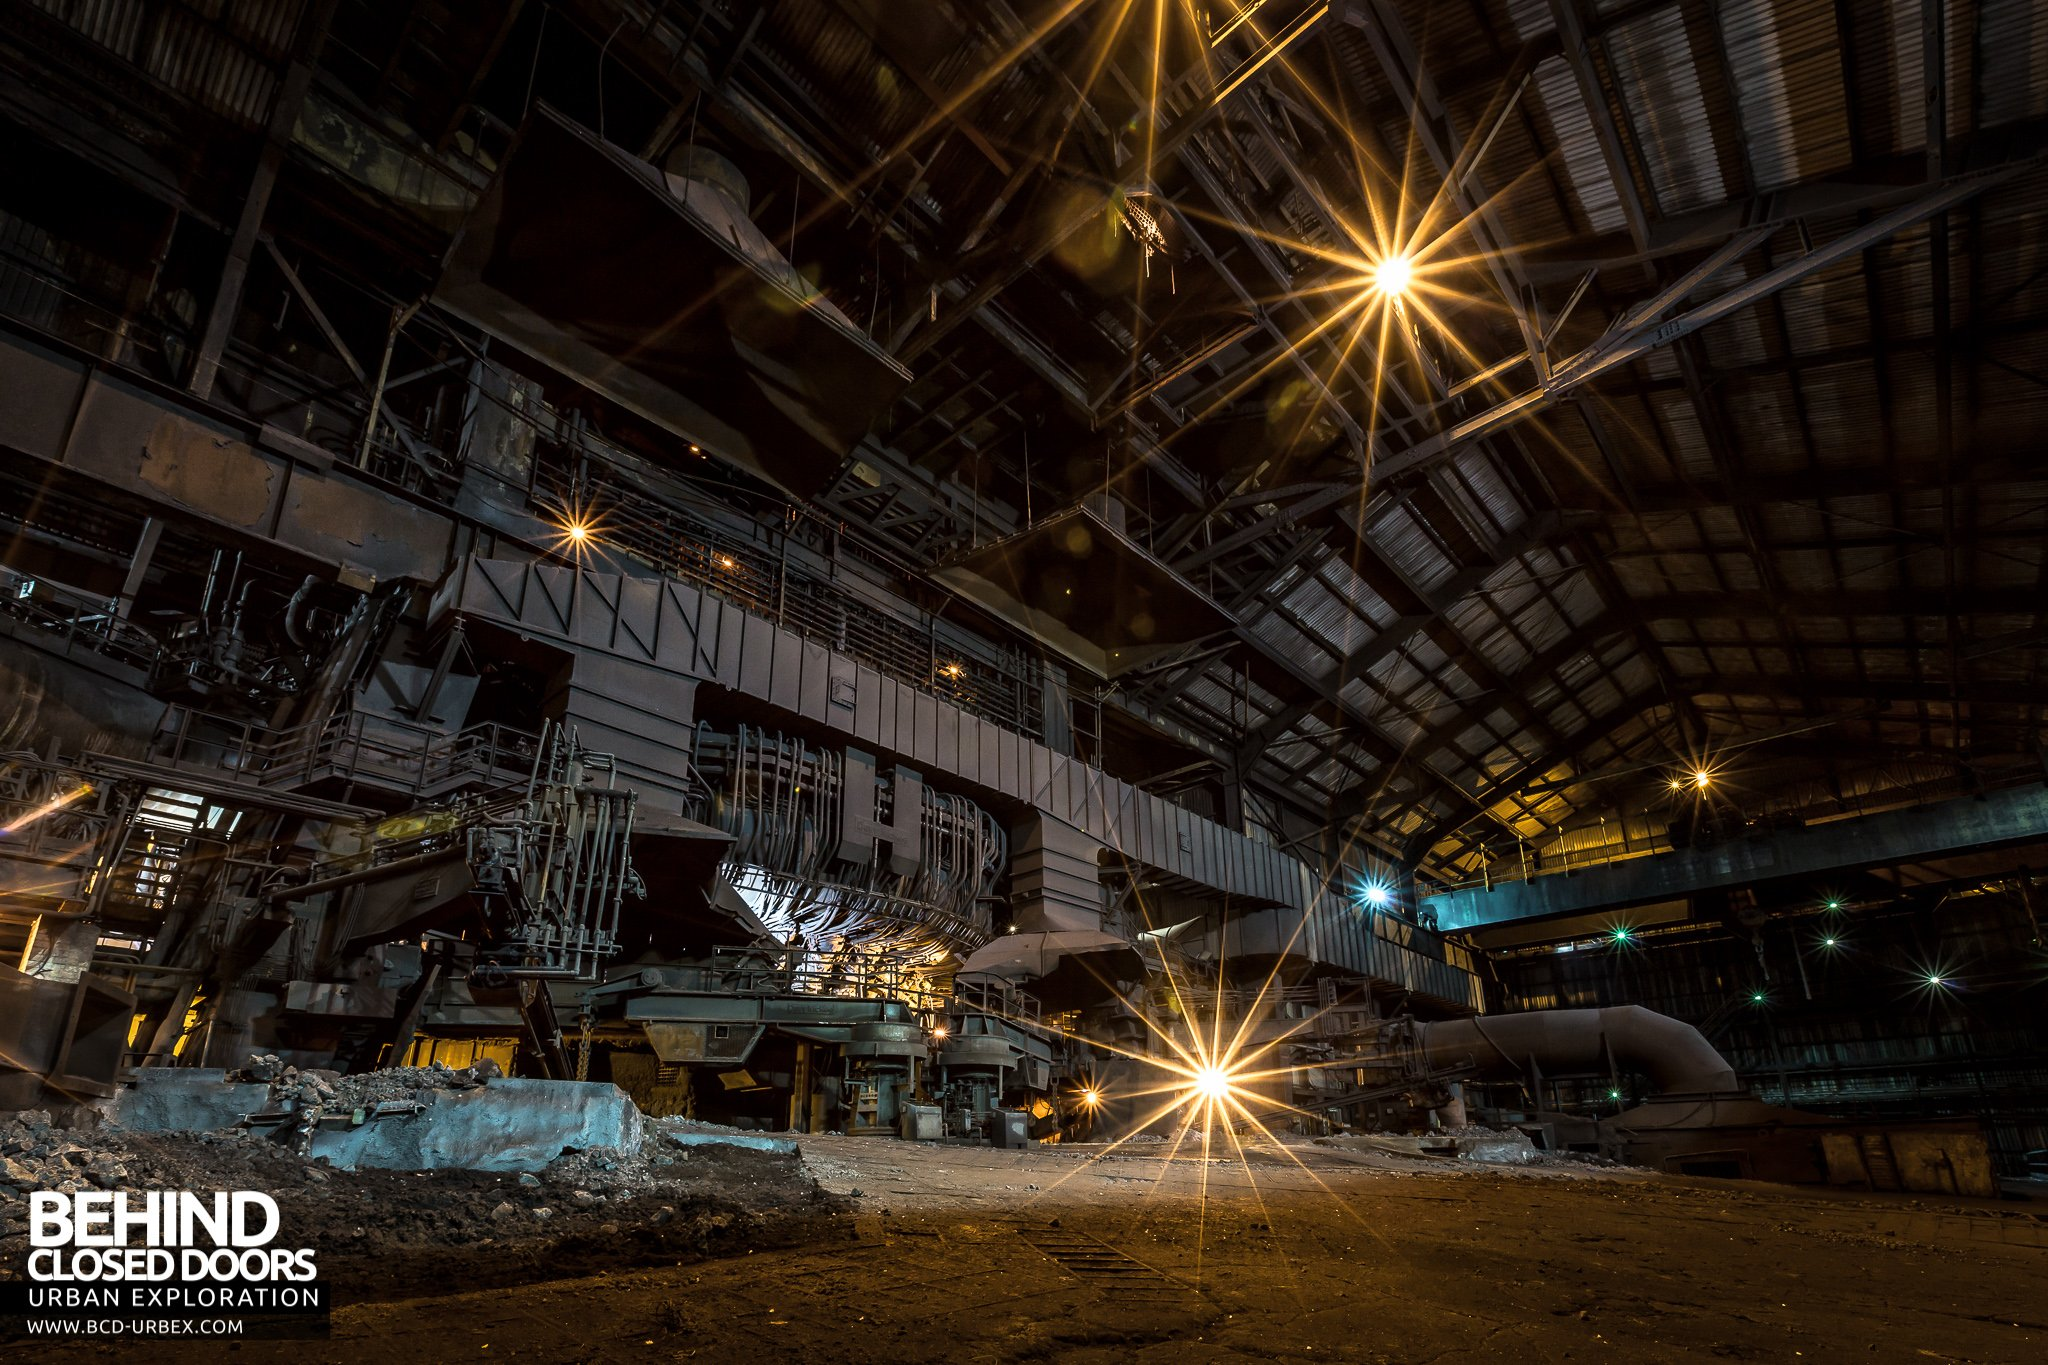 Blast Furnace Construction : Redcar blast furnace middlesbrough uk urbex behind